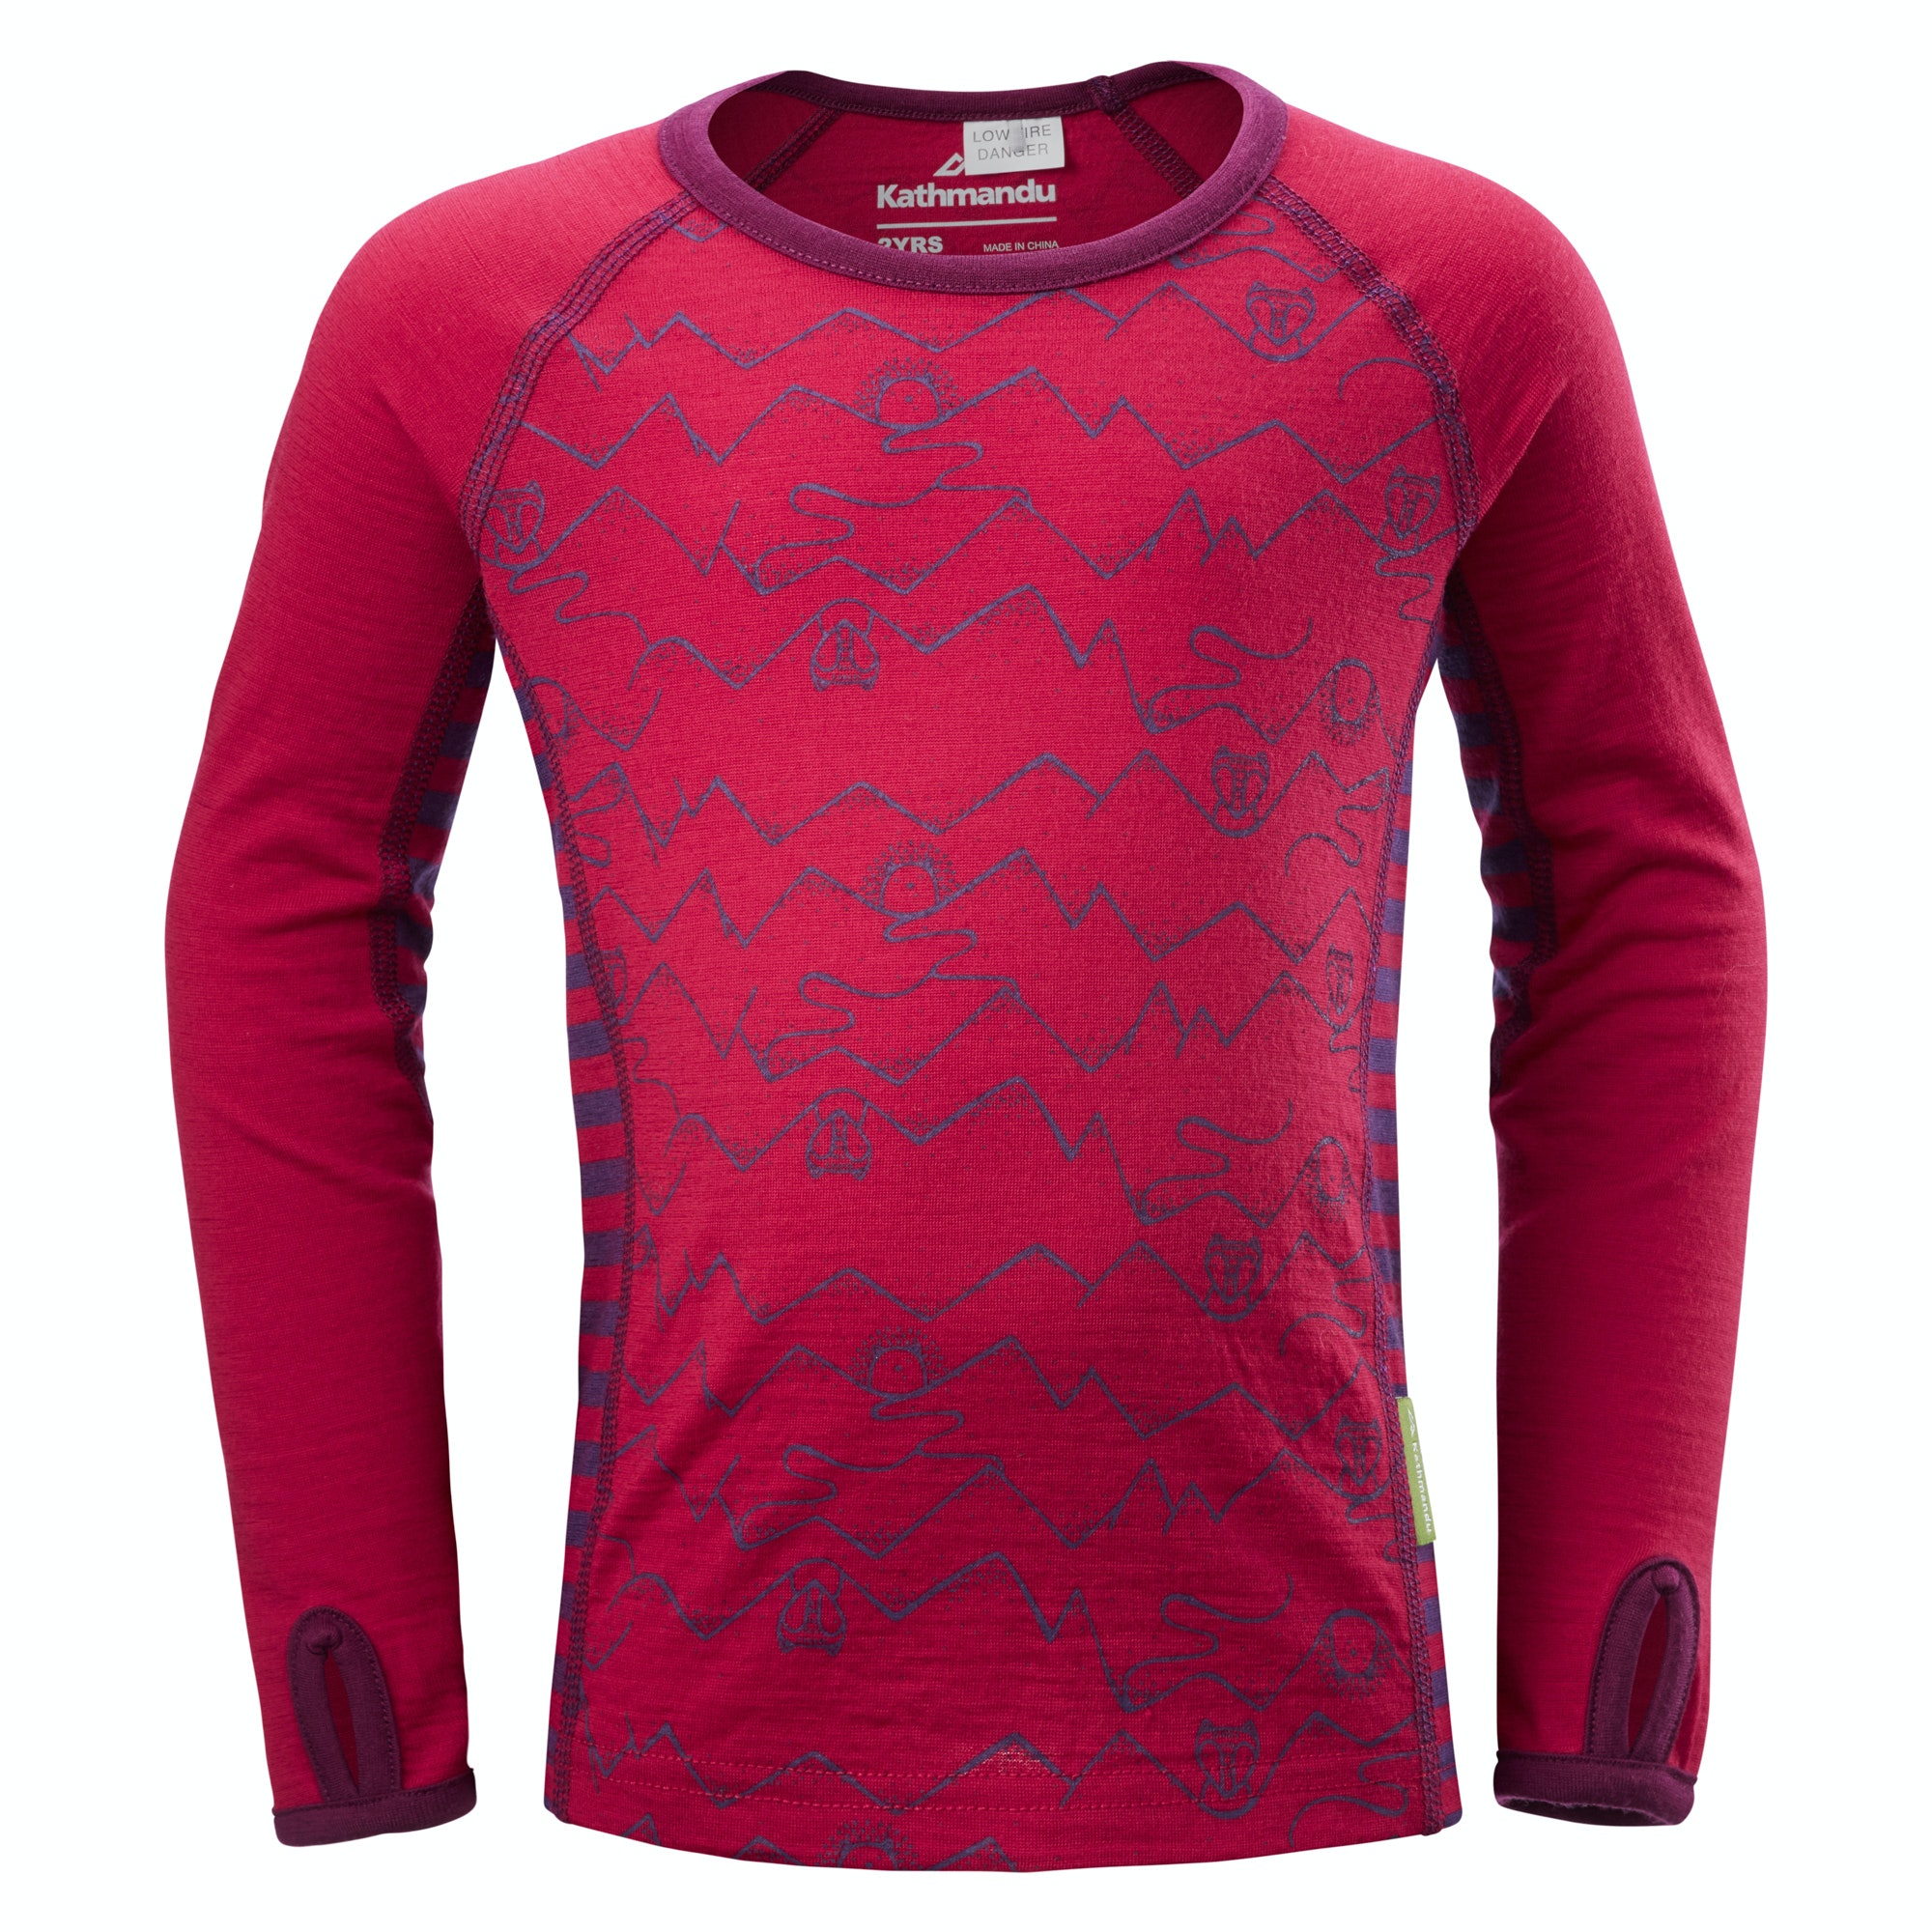 View more of the Curlew Kids' Long Sleeve Merino Top